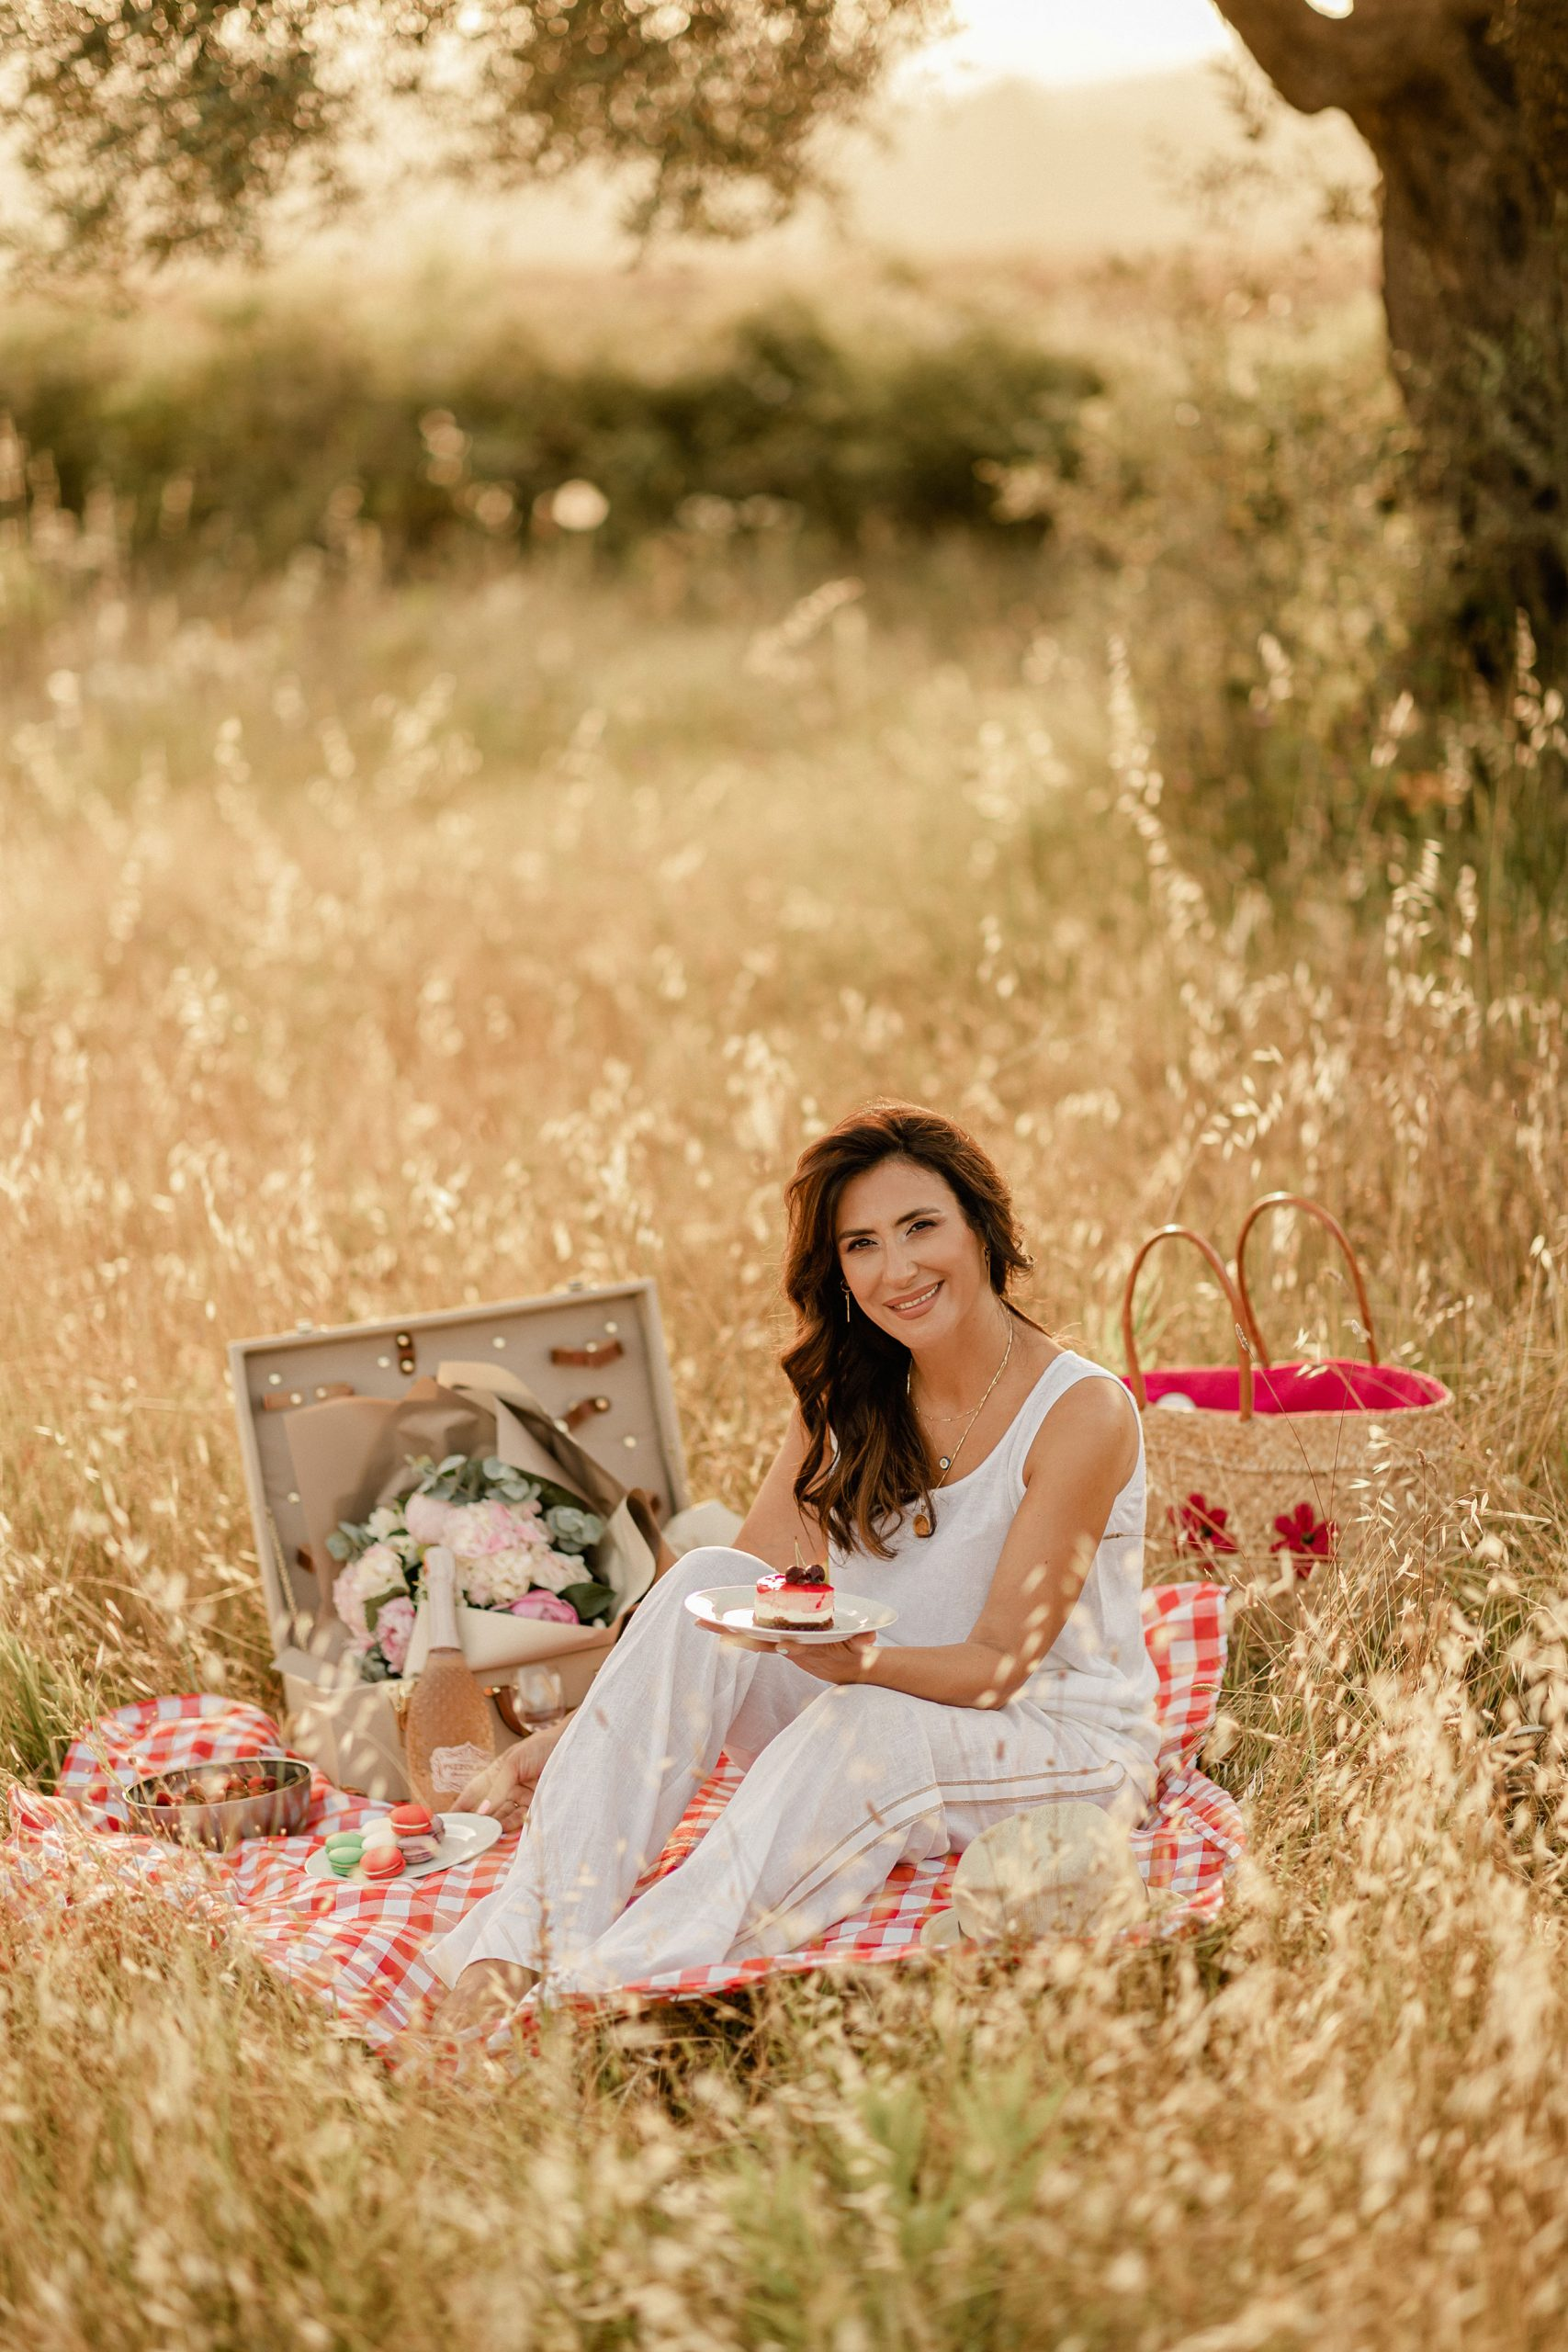 Iva Tico during a picnic photoshoot with a dessert in her hand